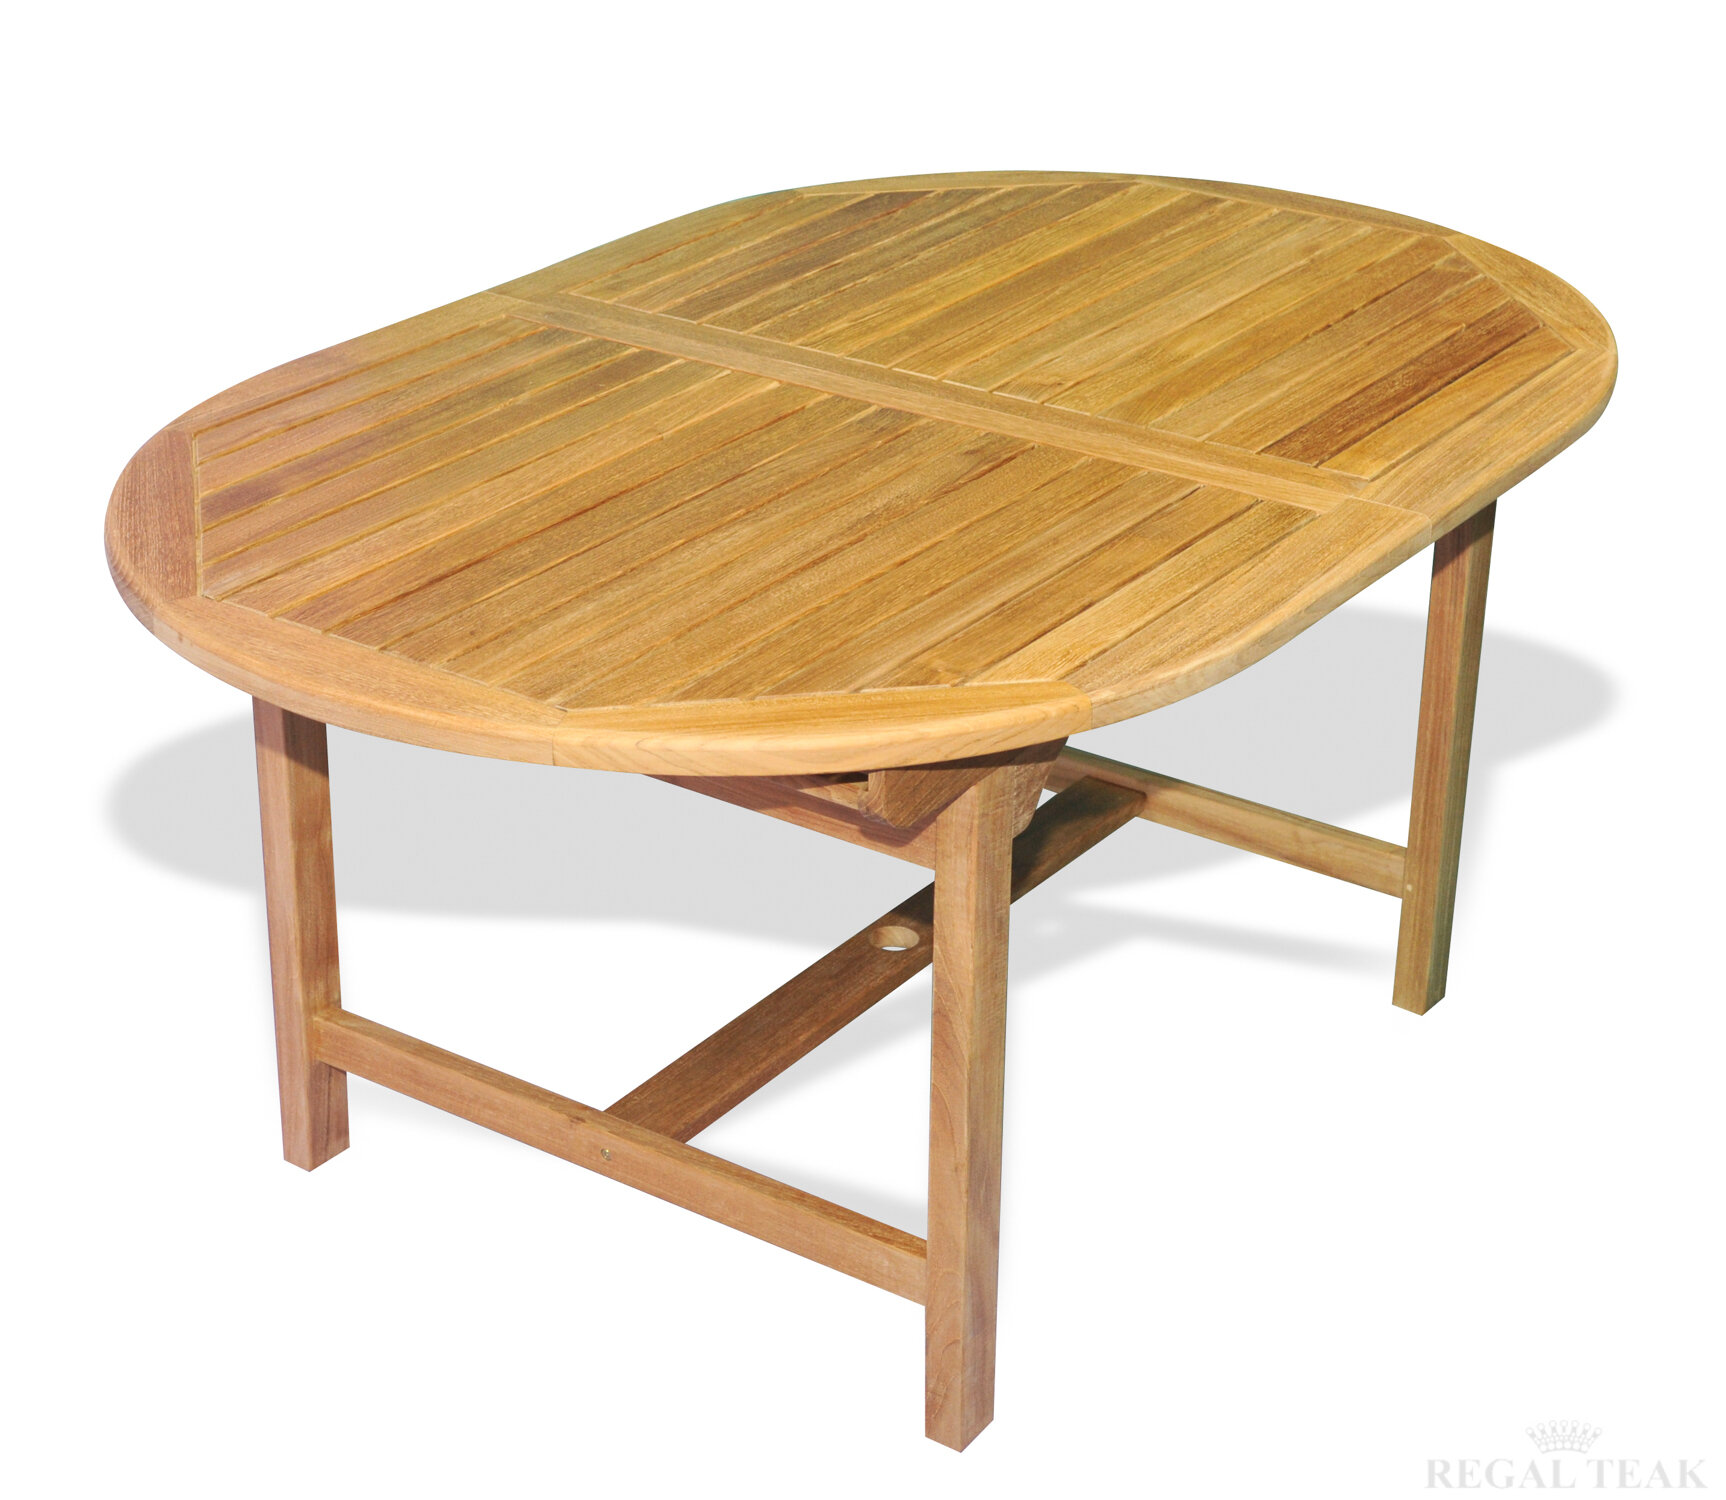 Regal Teak Extension Dining Table Wayfair - Teak oval extension dining table